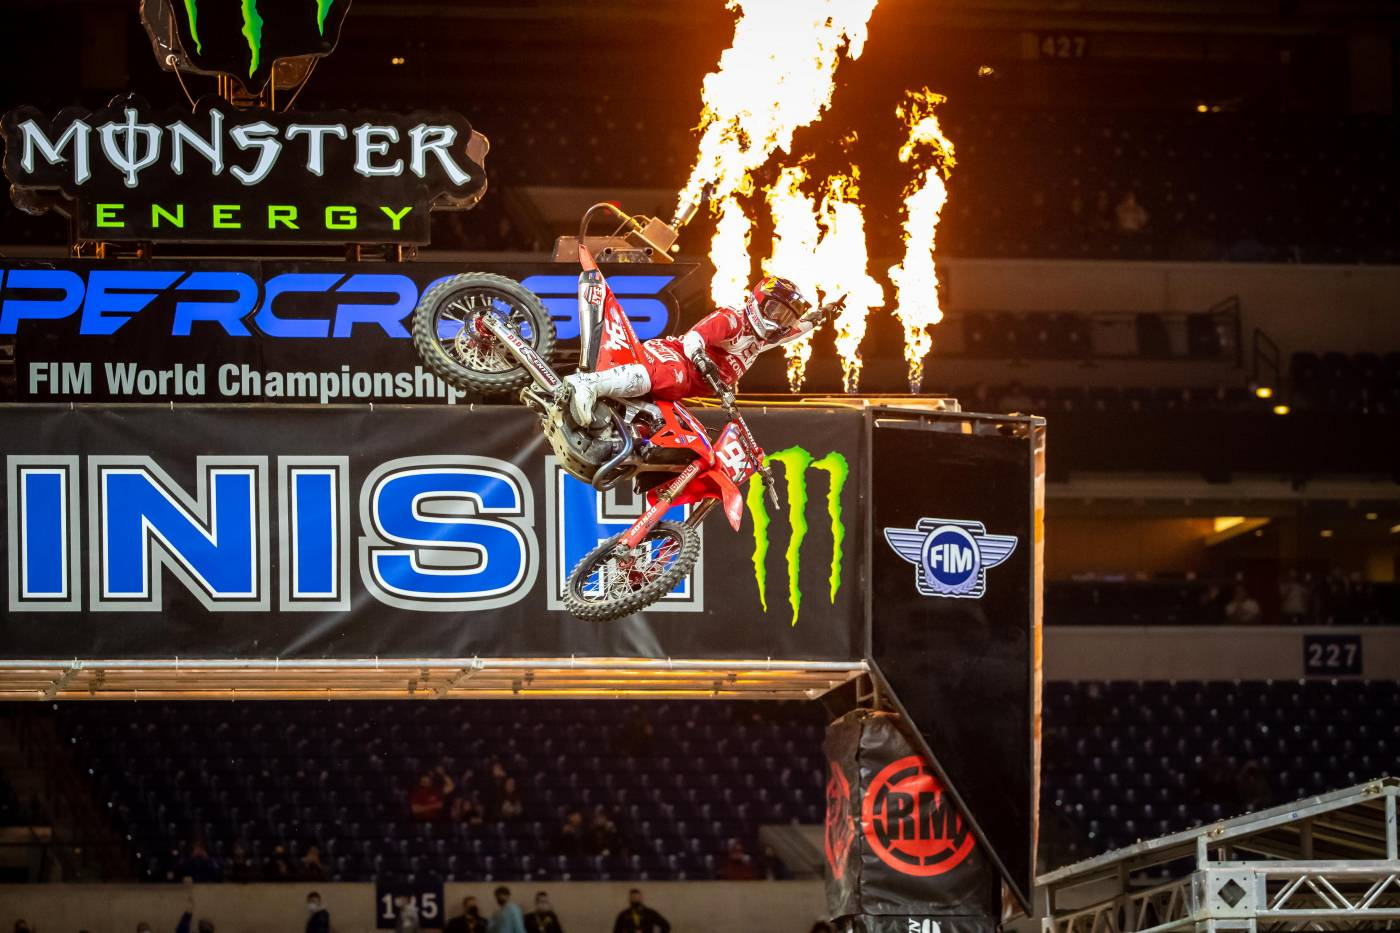 Dominant Win for Roczen at Indianapolis 2 Supercross